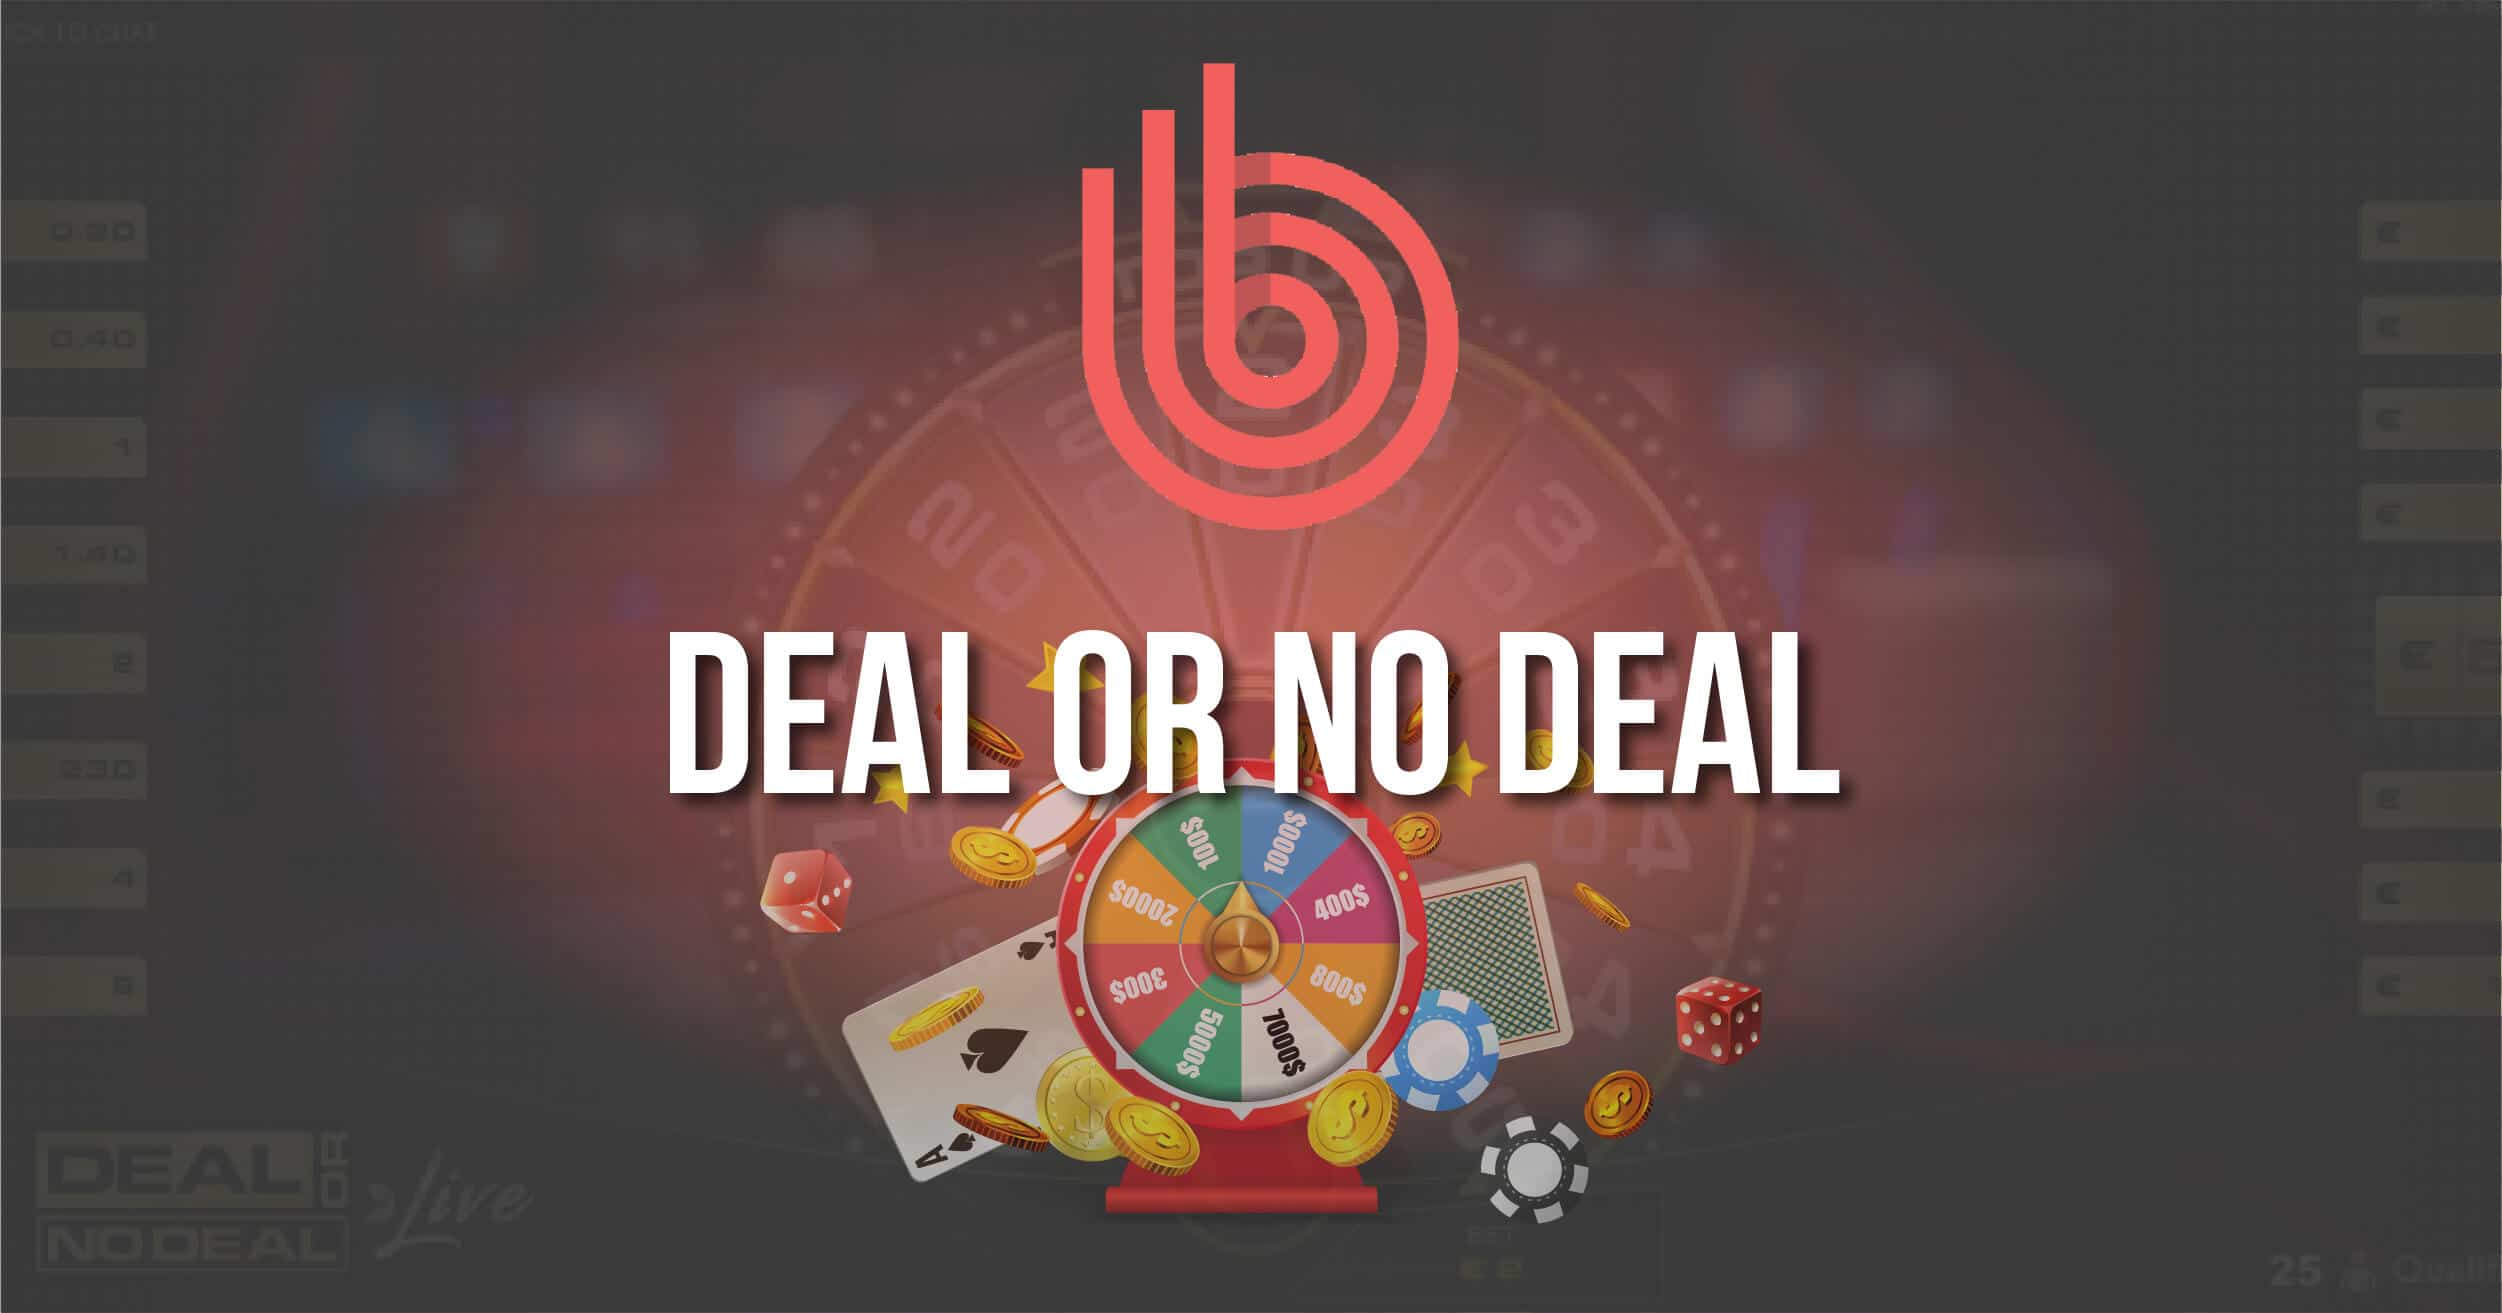 Deal or No Deal Featured